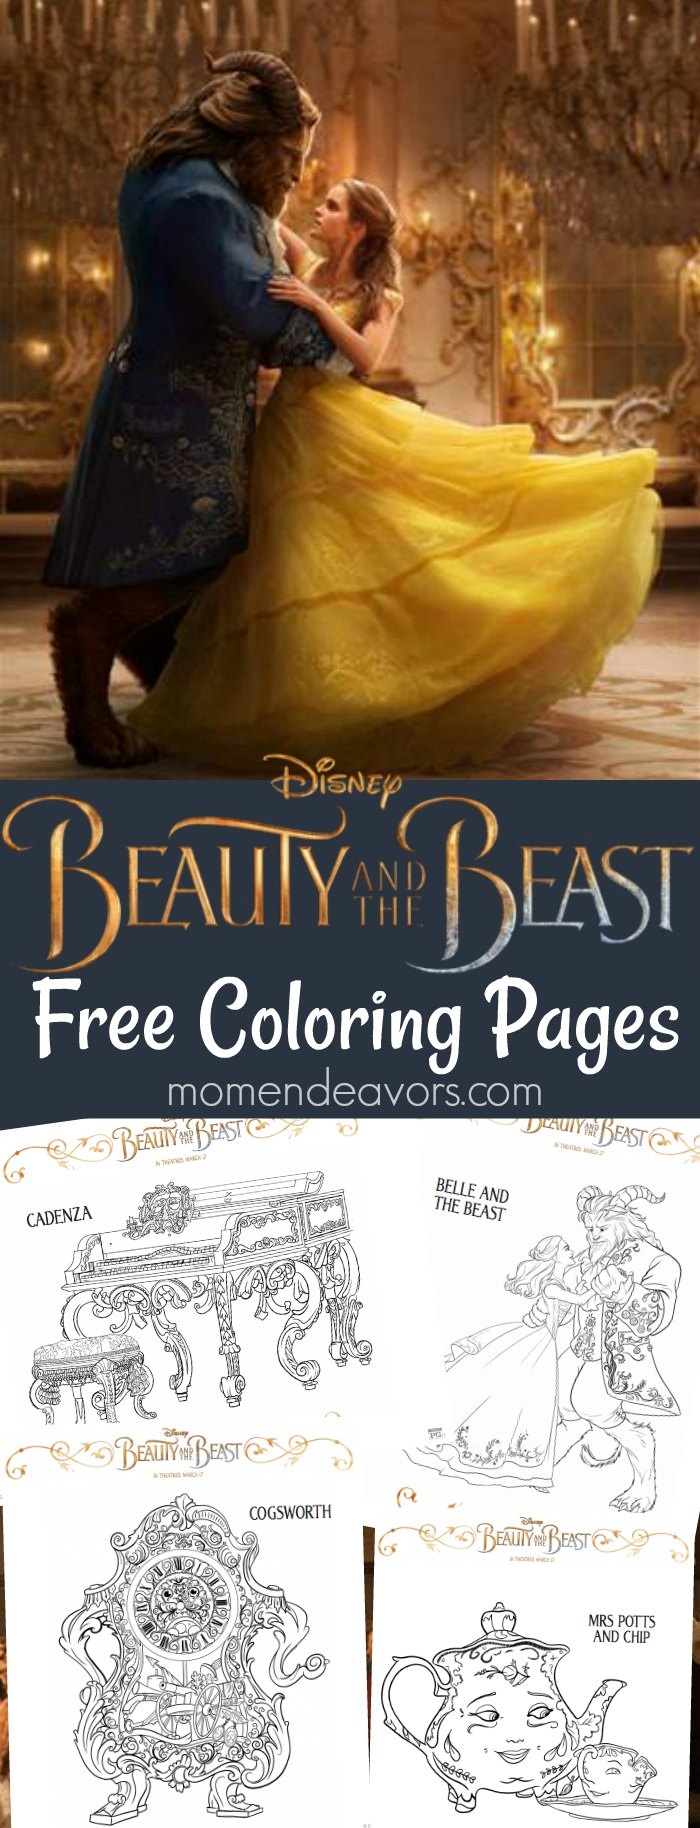 So We Were Thrilled To Get A Review Copy Have On Blu Ray At Home Add The Movie Watching Fun Some Free Printable Coloring Pages Enjoy